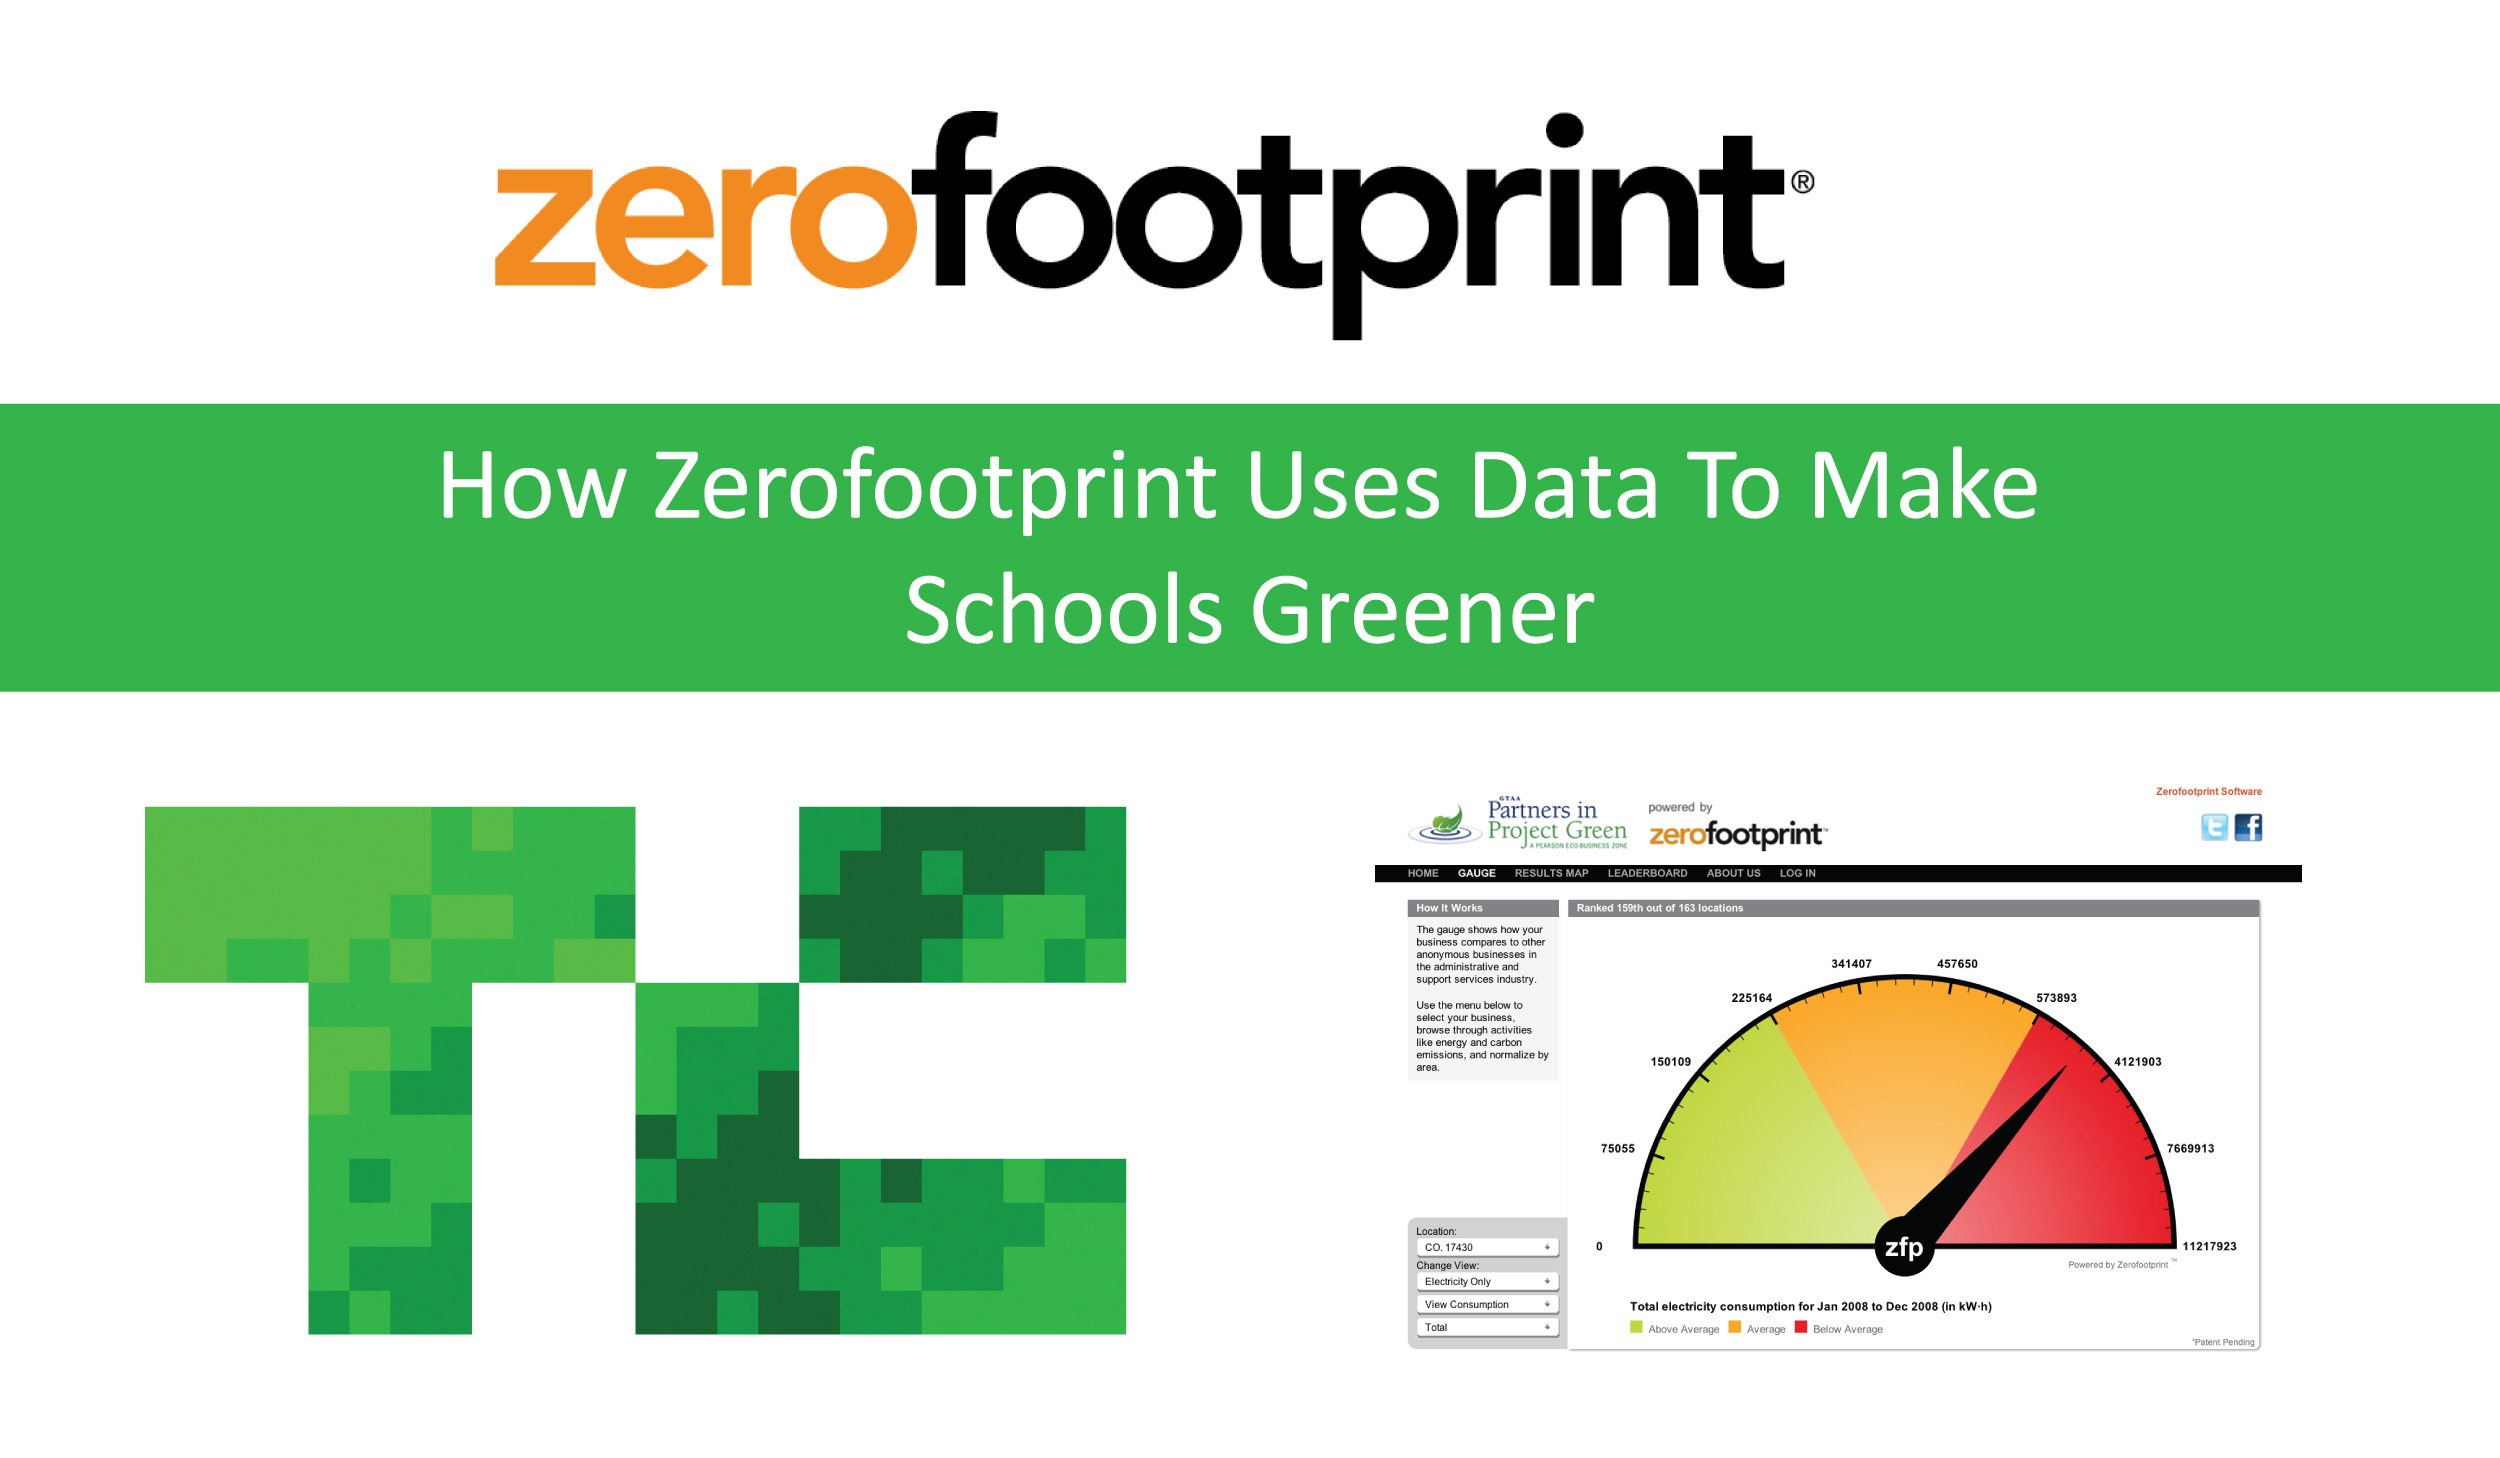 How Zerofootprint Uses Data To Make Schools Greener